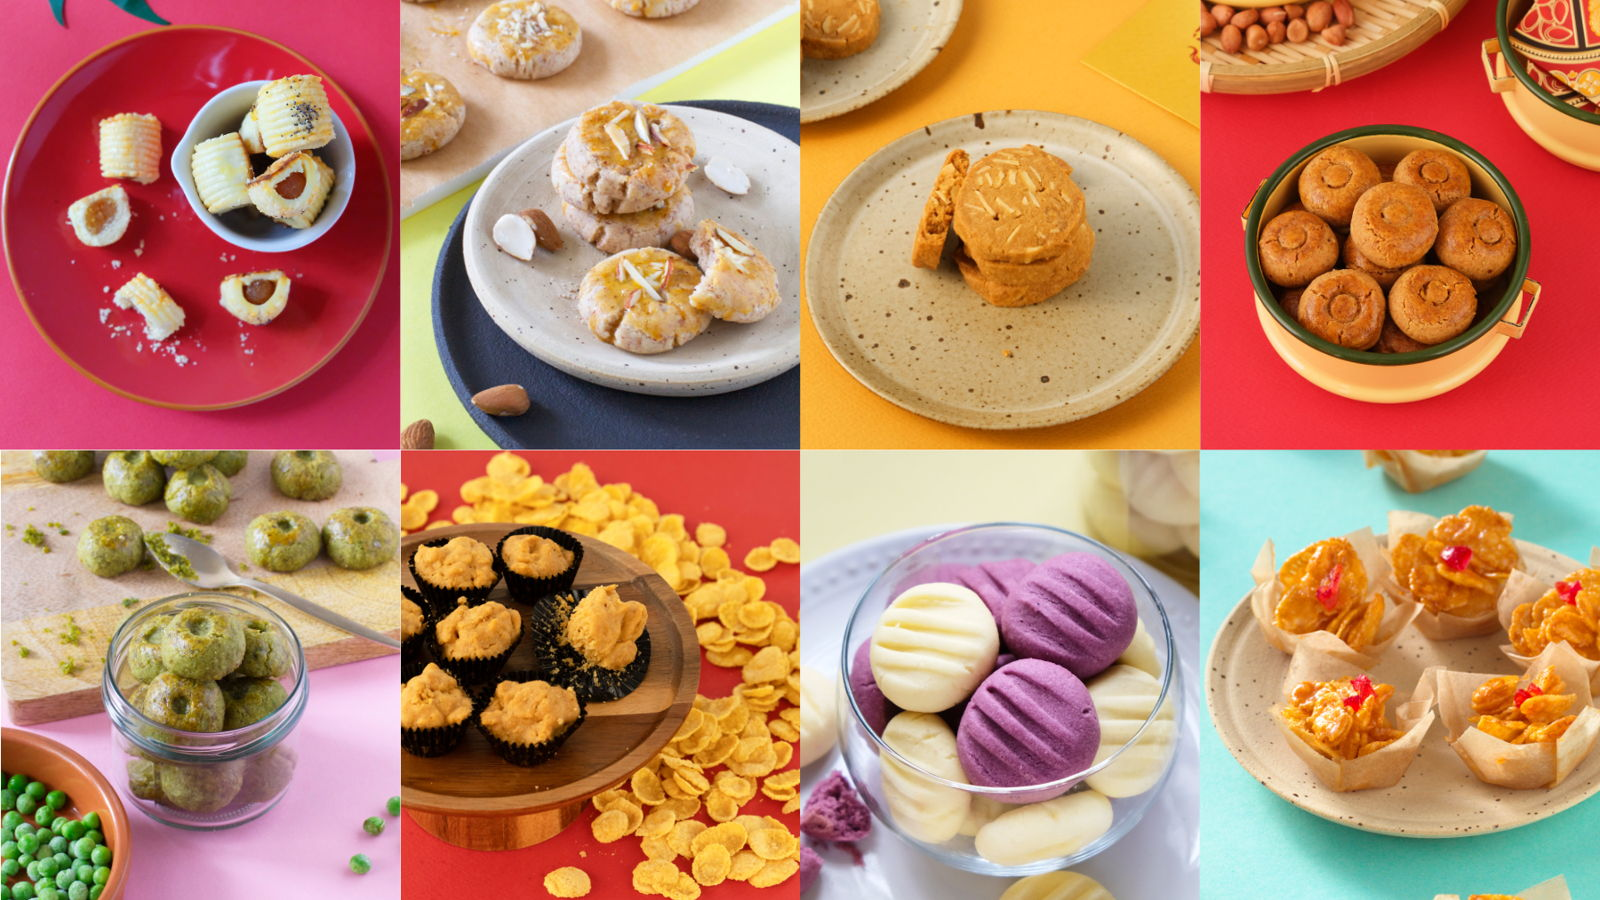 Even Kids Can Attempt These Easy CNY Cookies Recipes